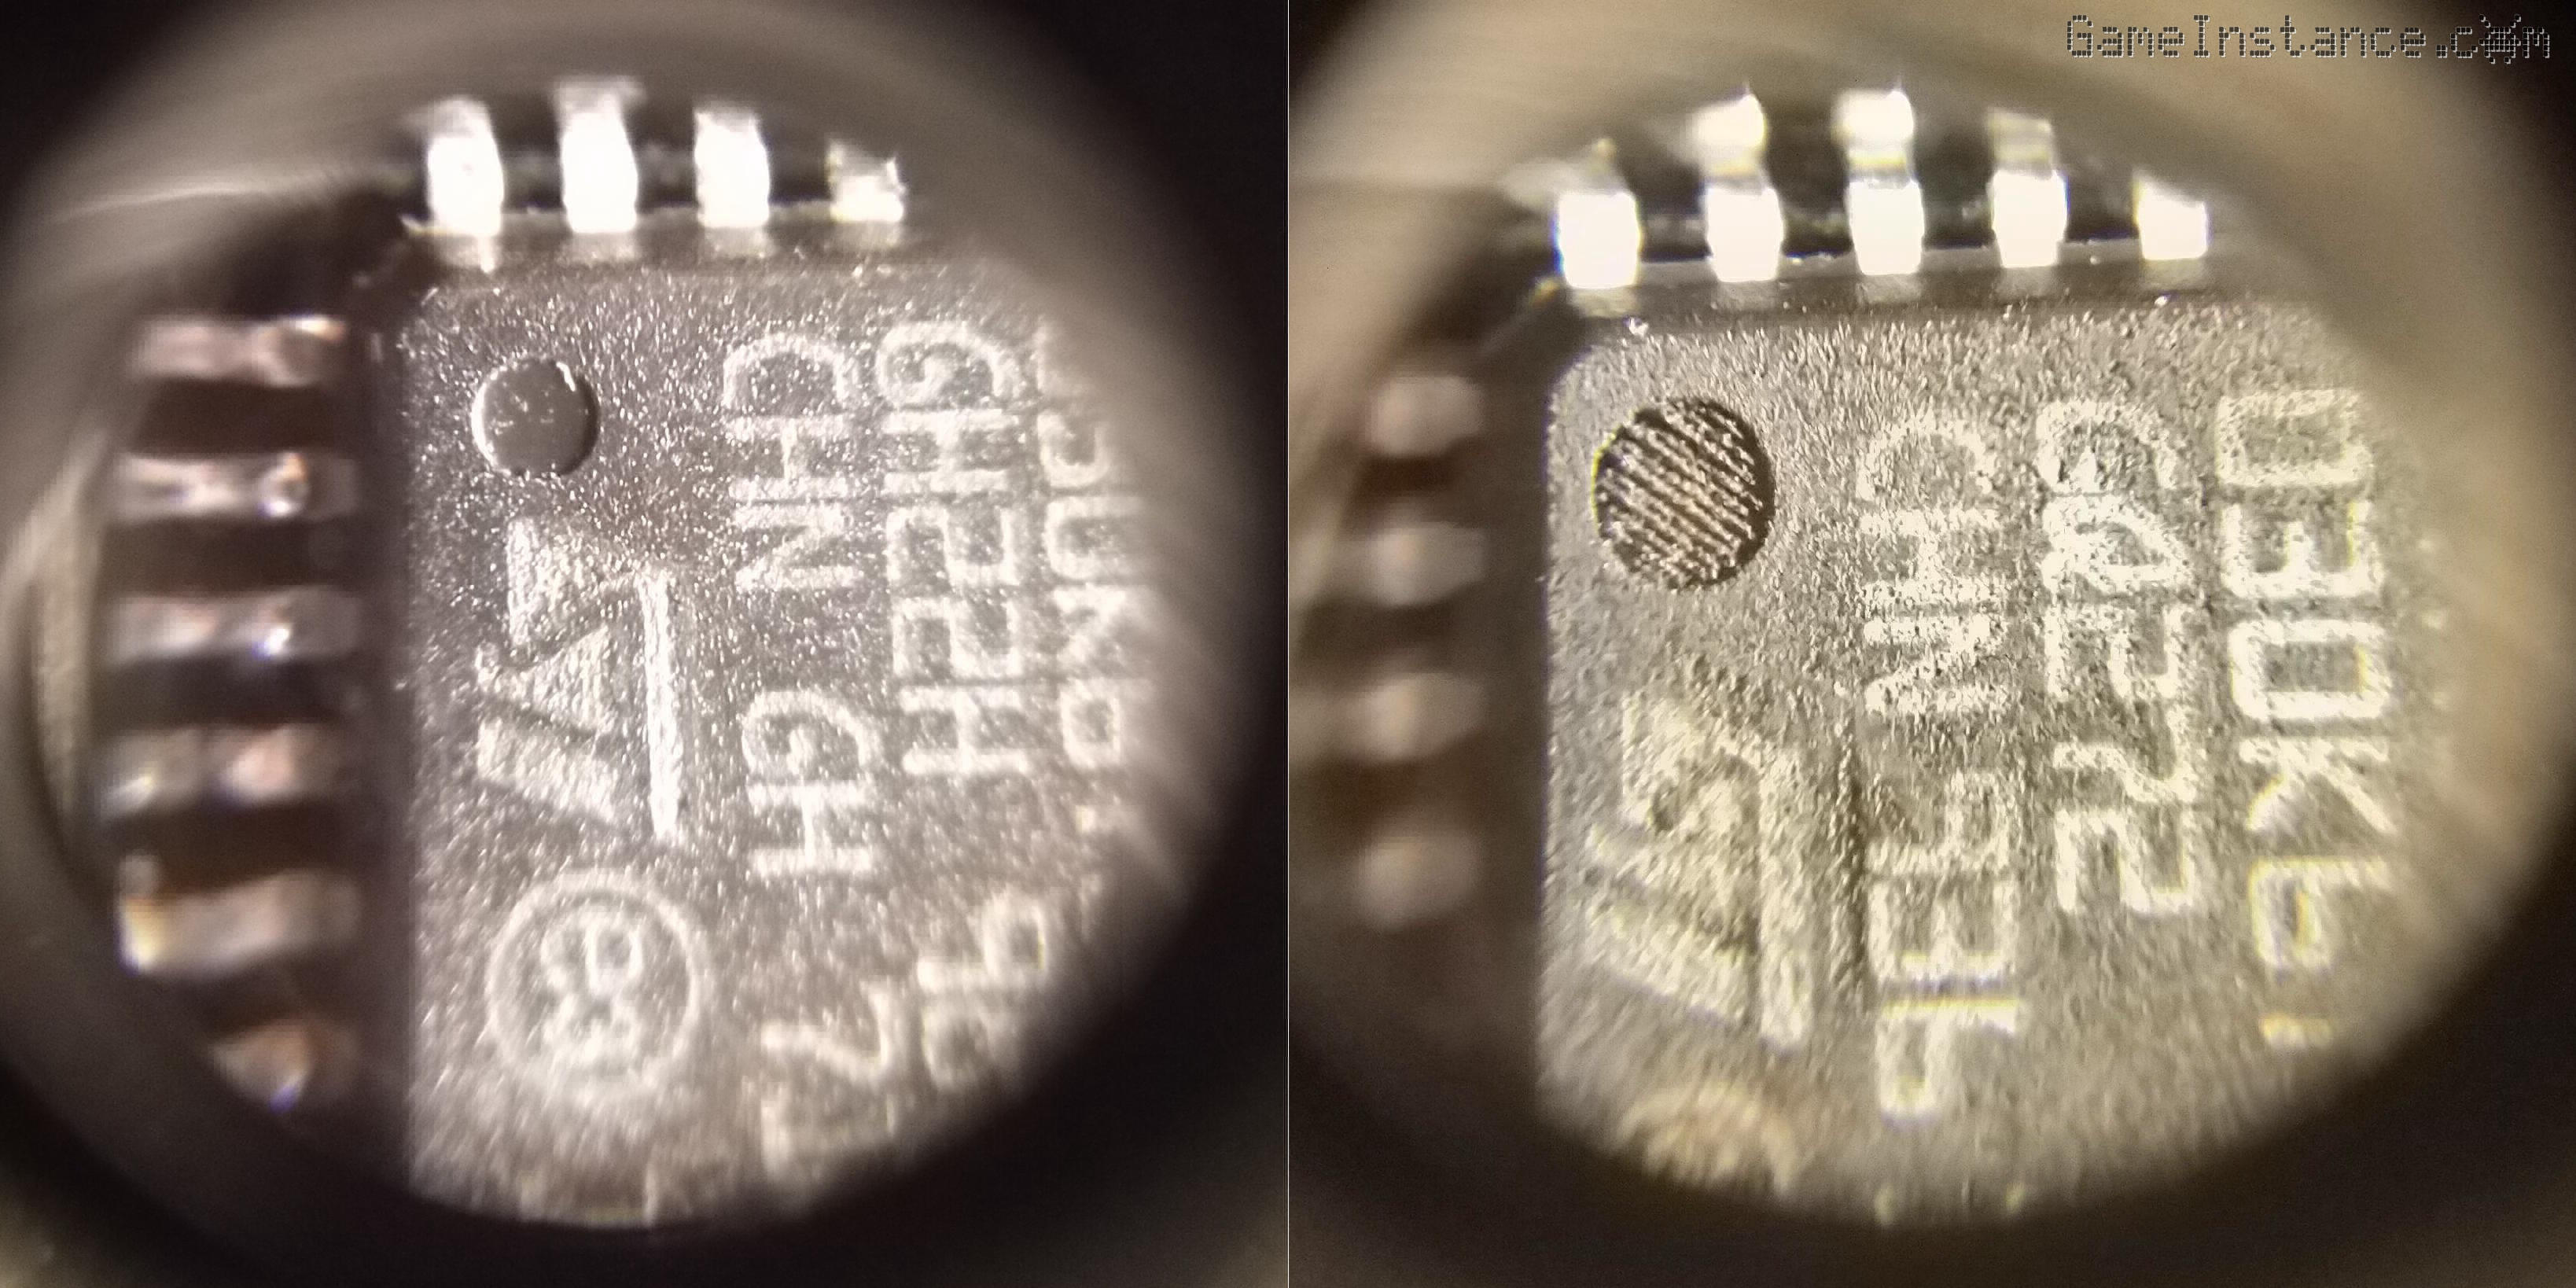 STM32F030K6T6 index dot - left: original, right: clone (bigger, with a dash pattern)